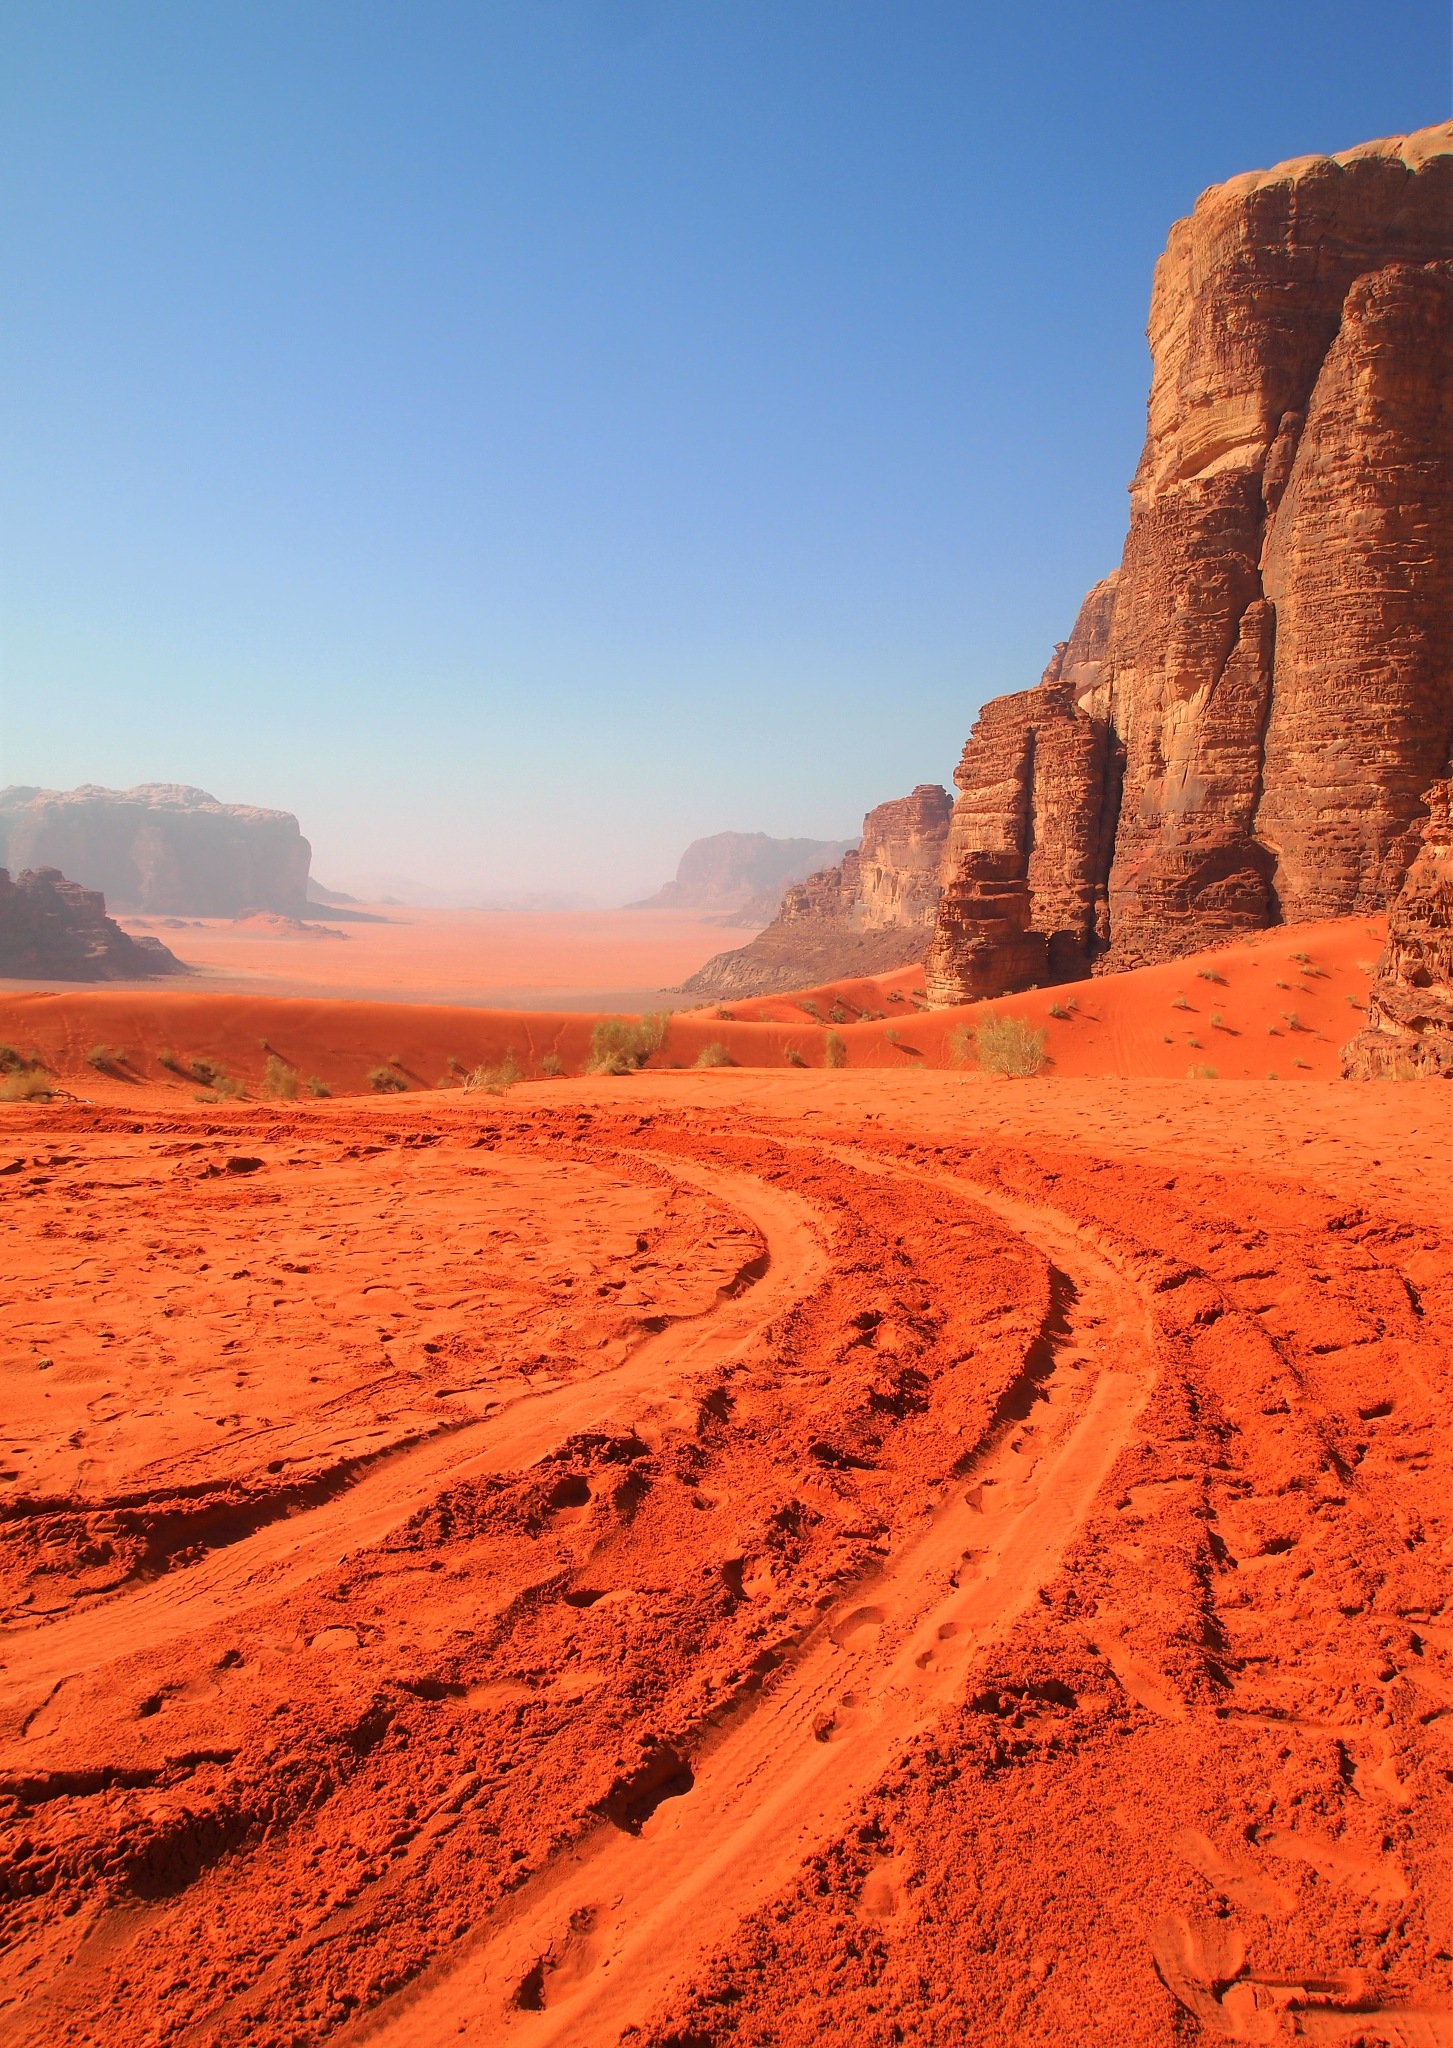 On the road on Mars by Kate Paris